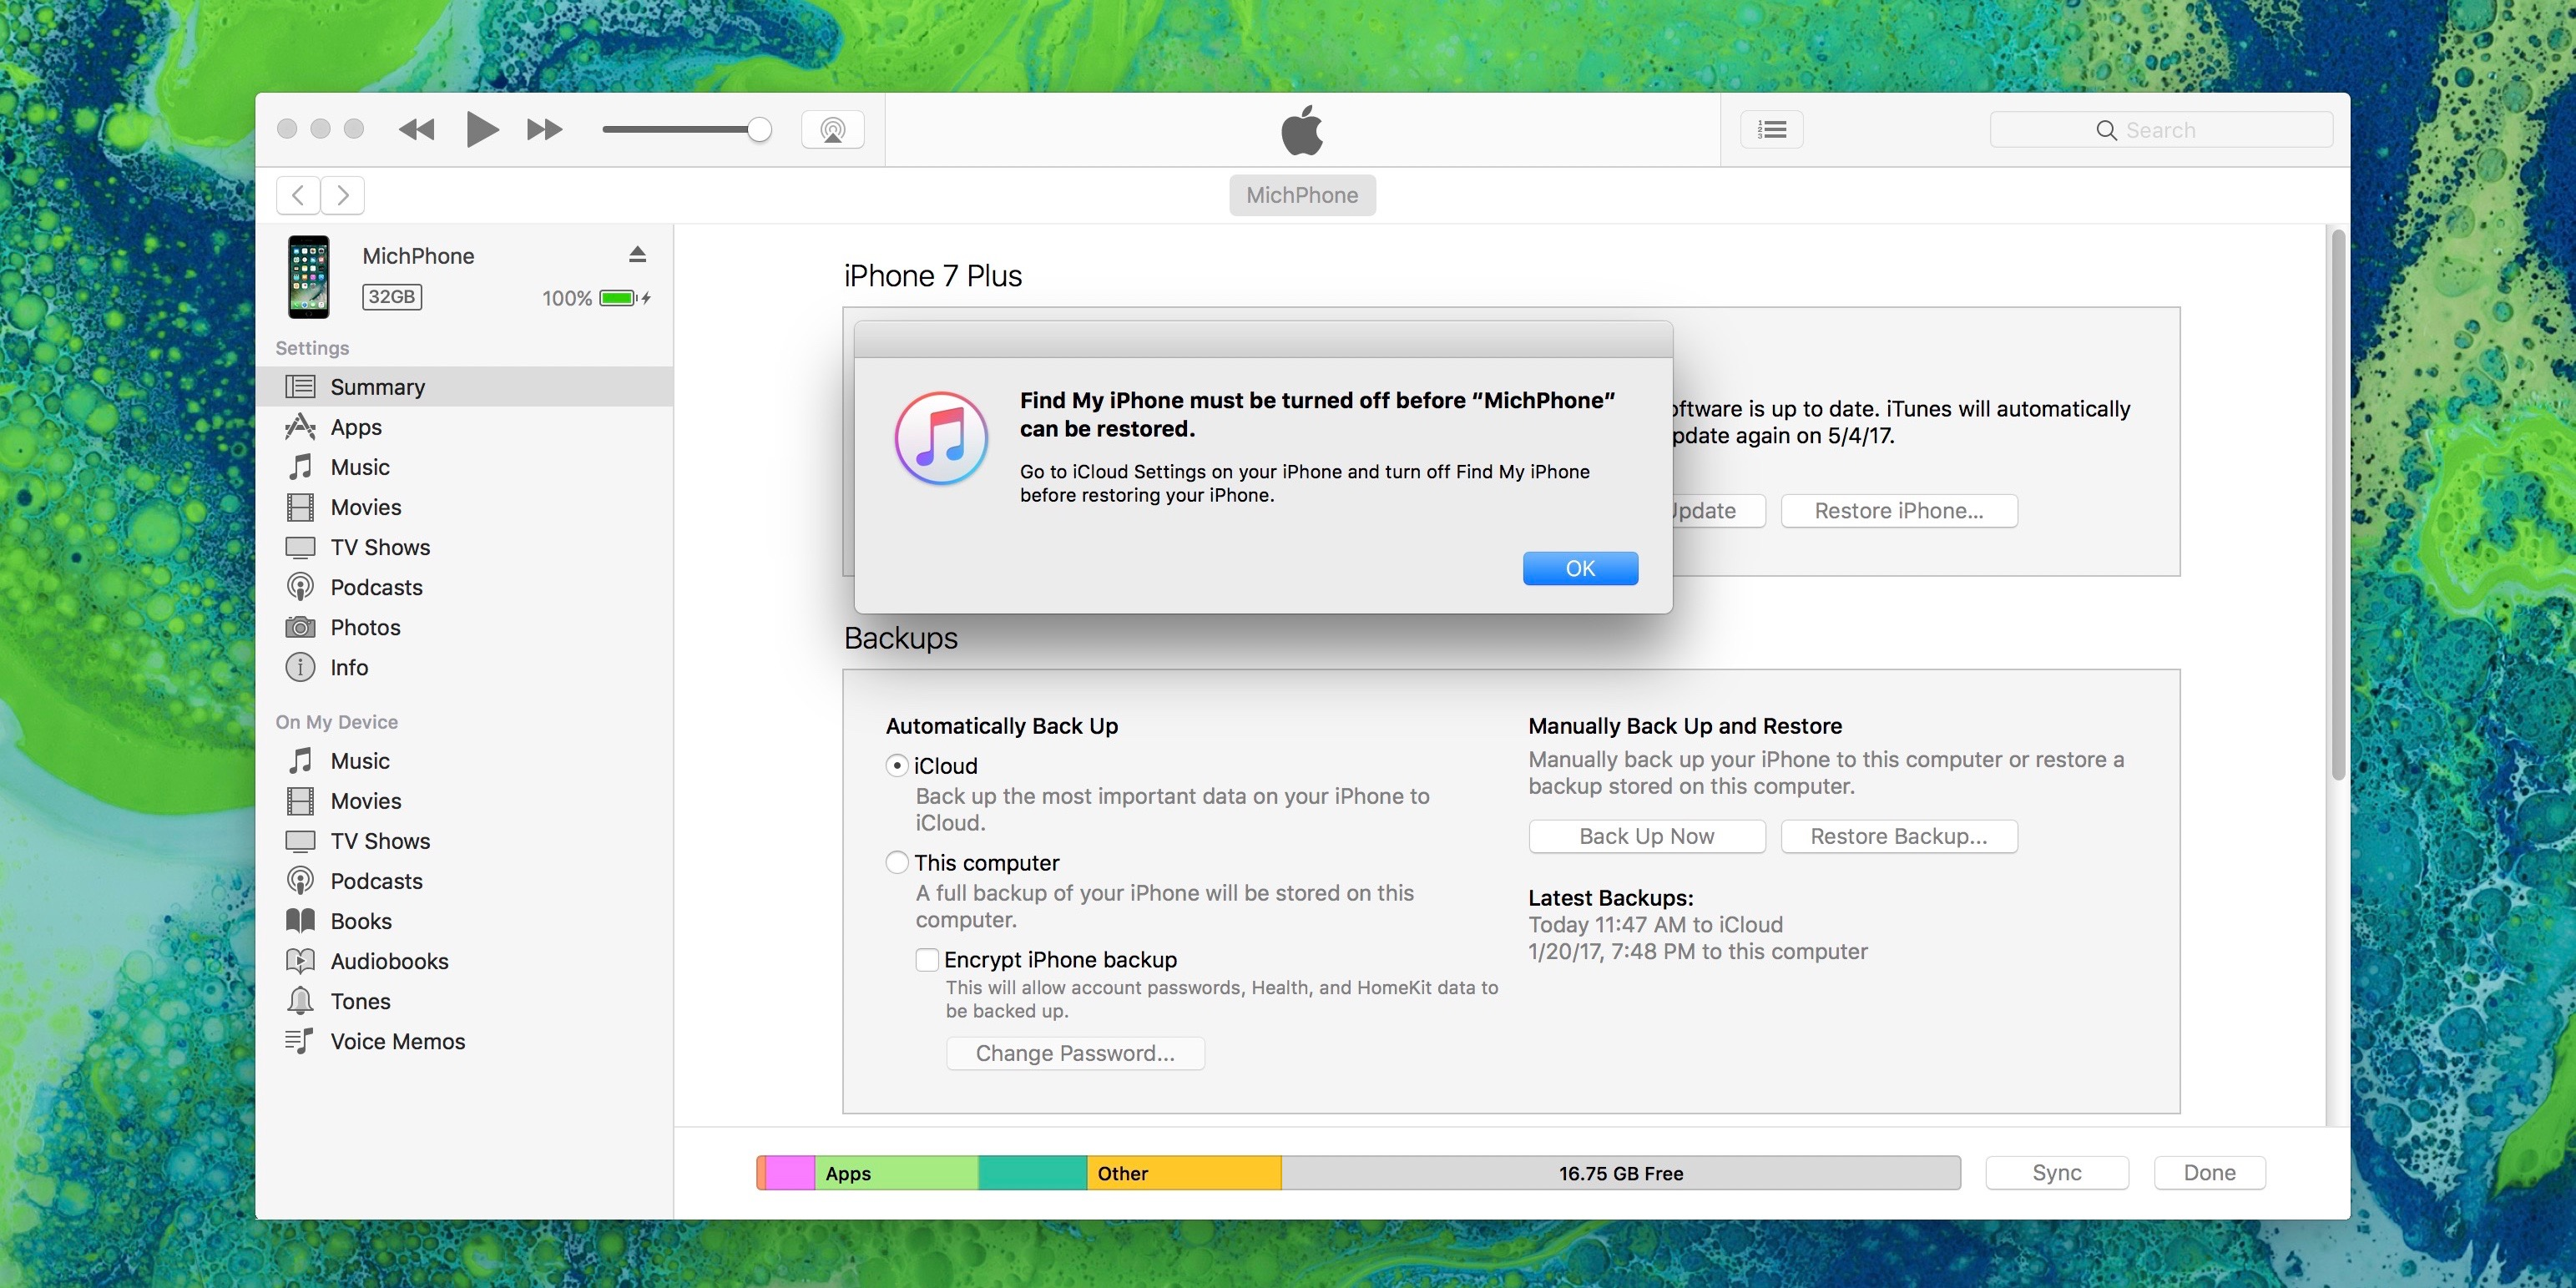 Image showing turn off Find my iPhone warning before restoring from iTunes Backup